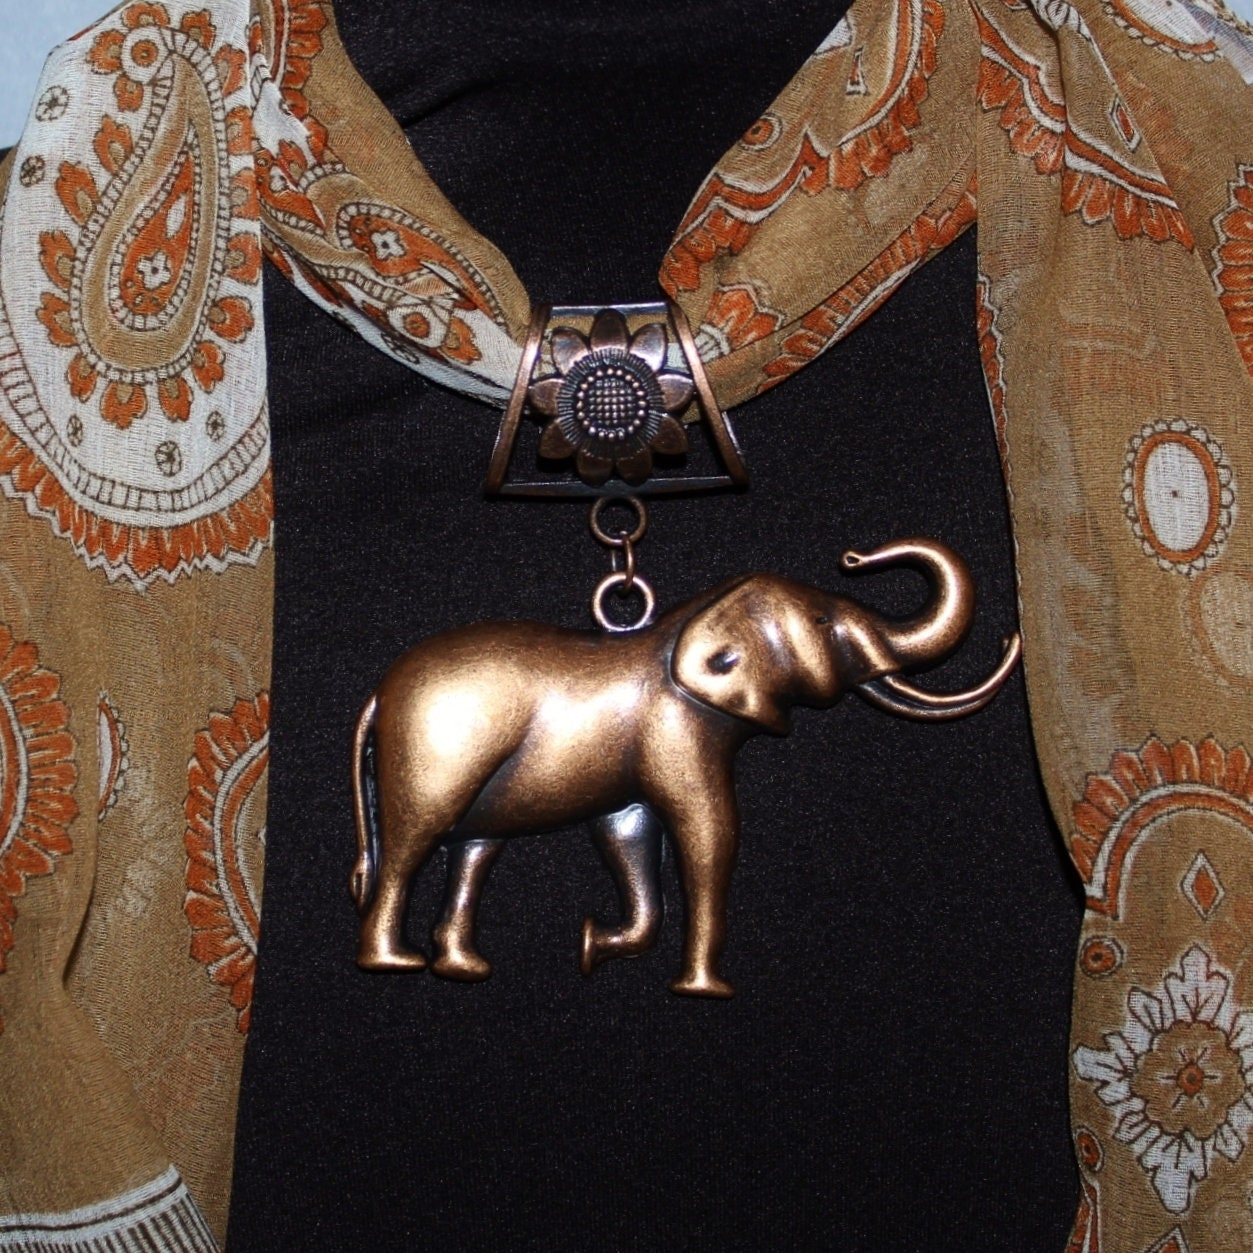 Large Metal Elephant Pendant, Scarf Jewelry, Antique Copper ~ Scarf Accessory~ Scarf Charm - product images  of